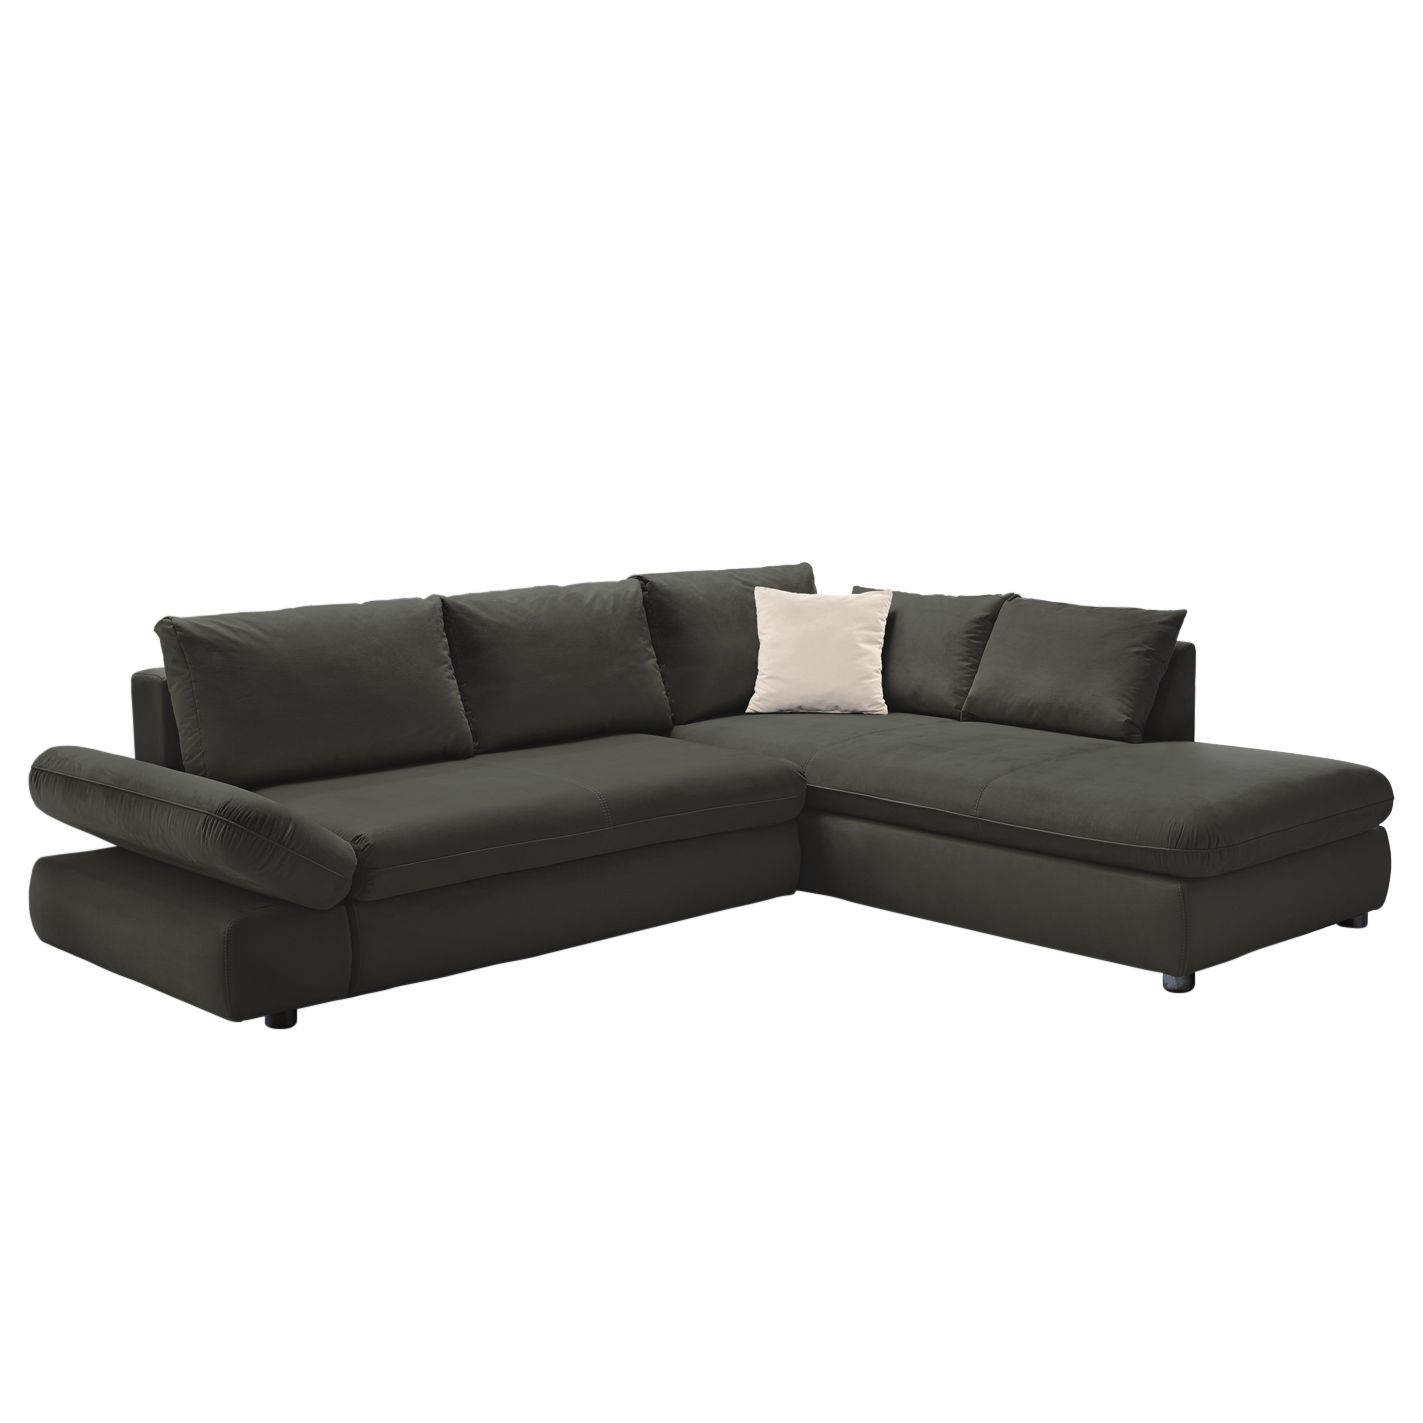 ecksofa mit schlaffunktion landhausstil. Black Bedroom Furniture Sets. Home Design Ideas